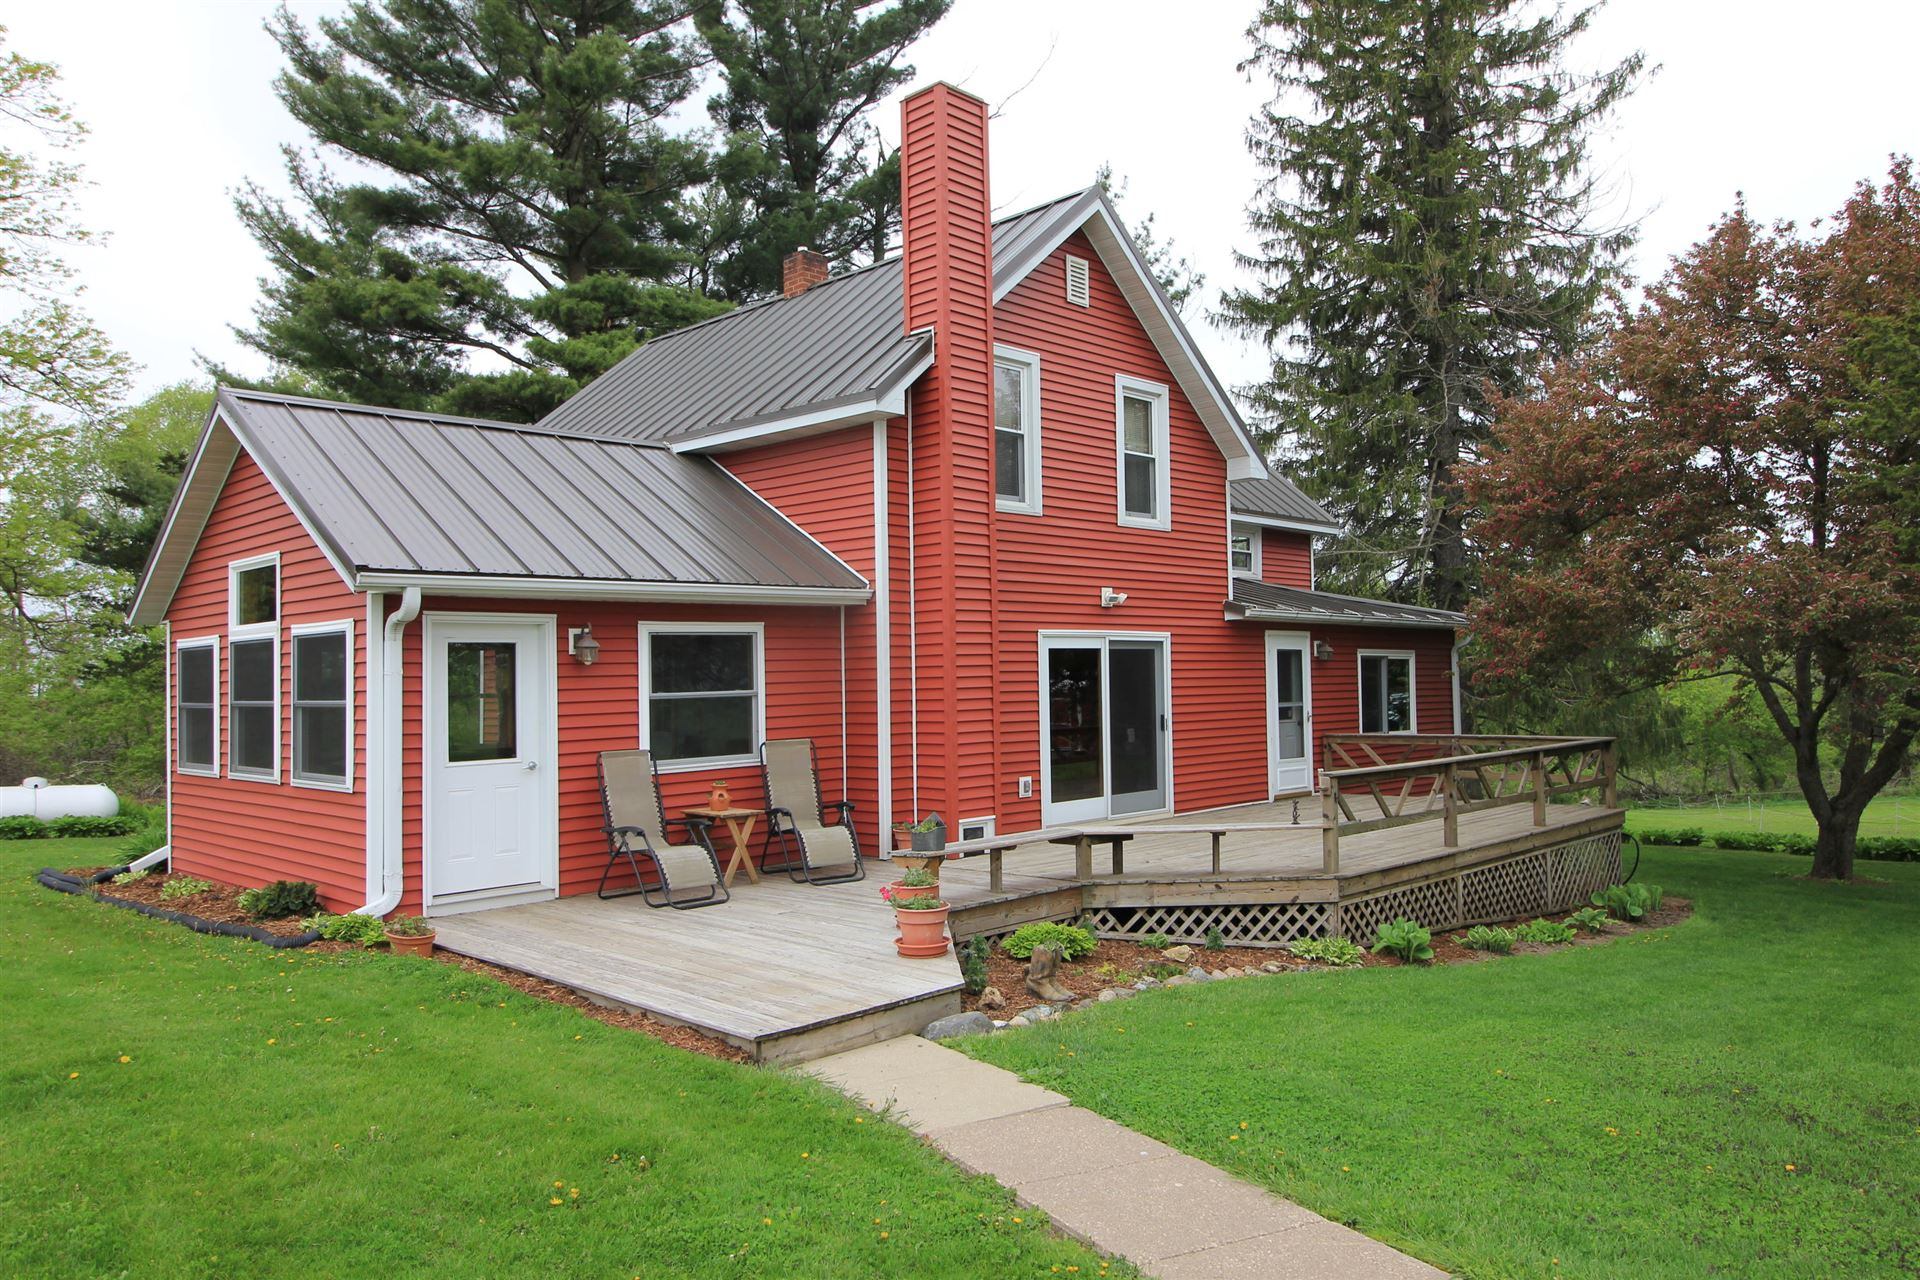 E5772 County Rd GG, Coon, WI 54667 - MLS#: 1681938